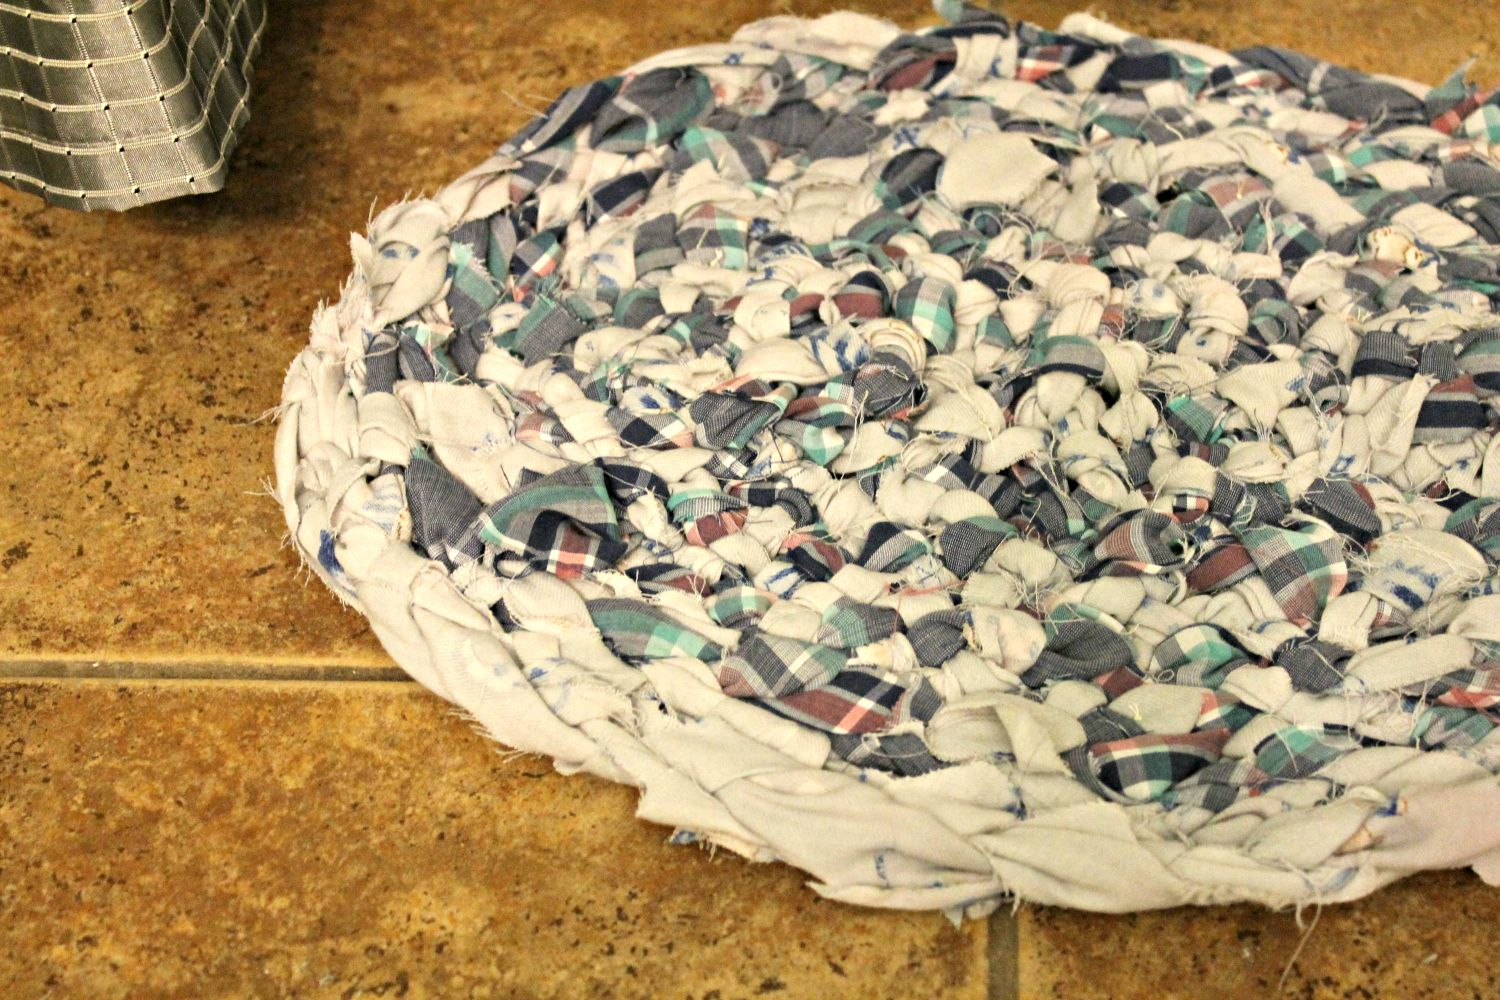 How To Make A Braided Rag Rug From Fabric Scraps